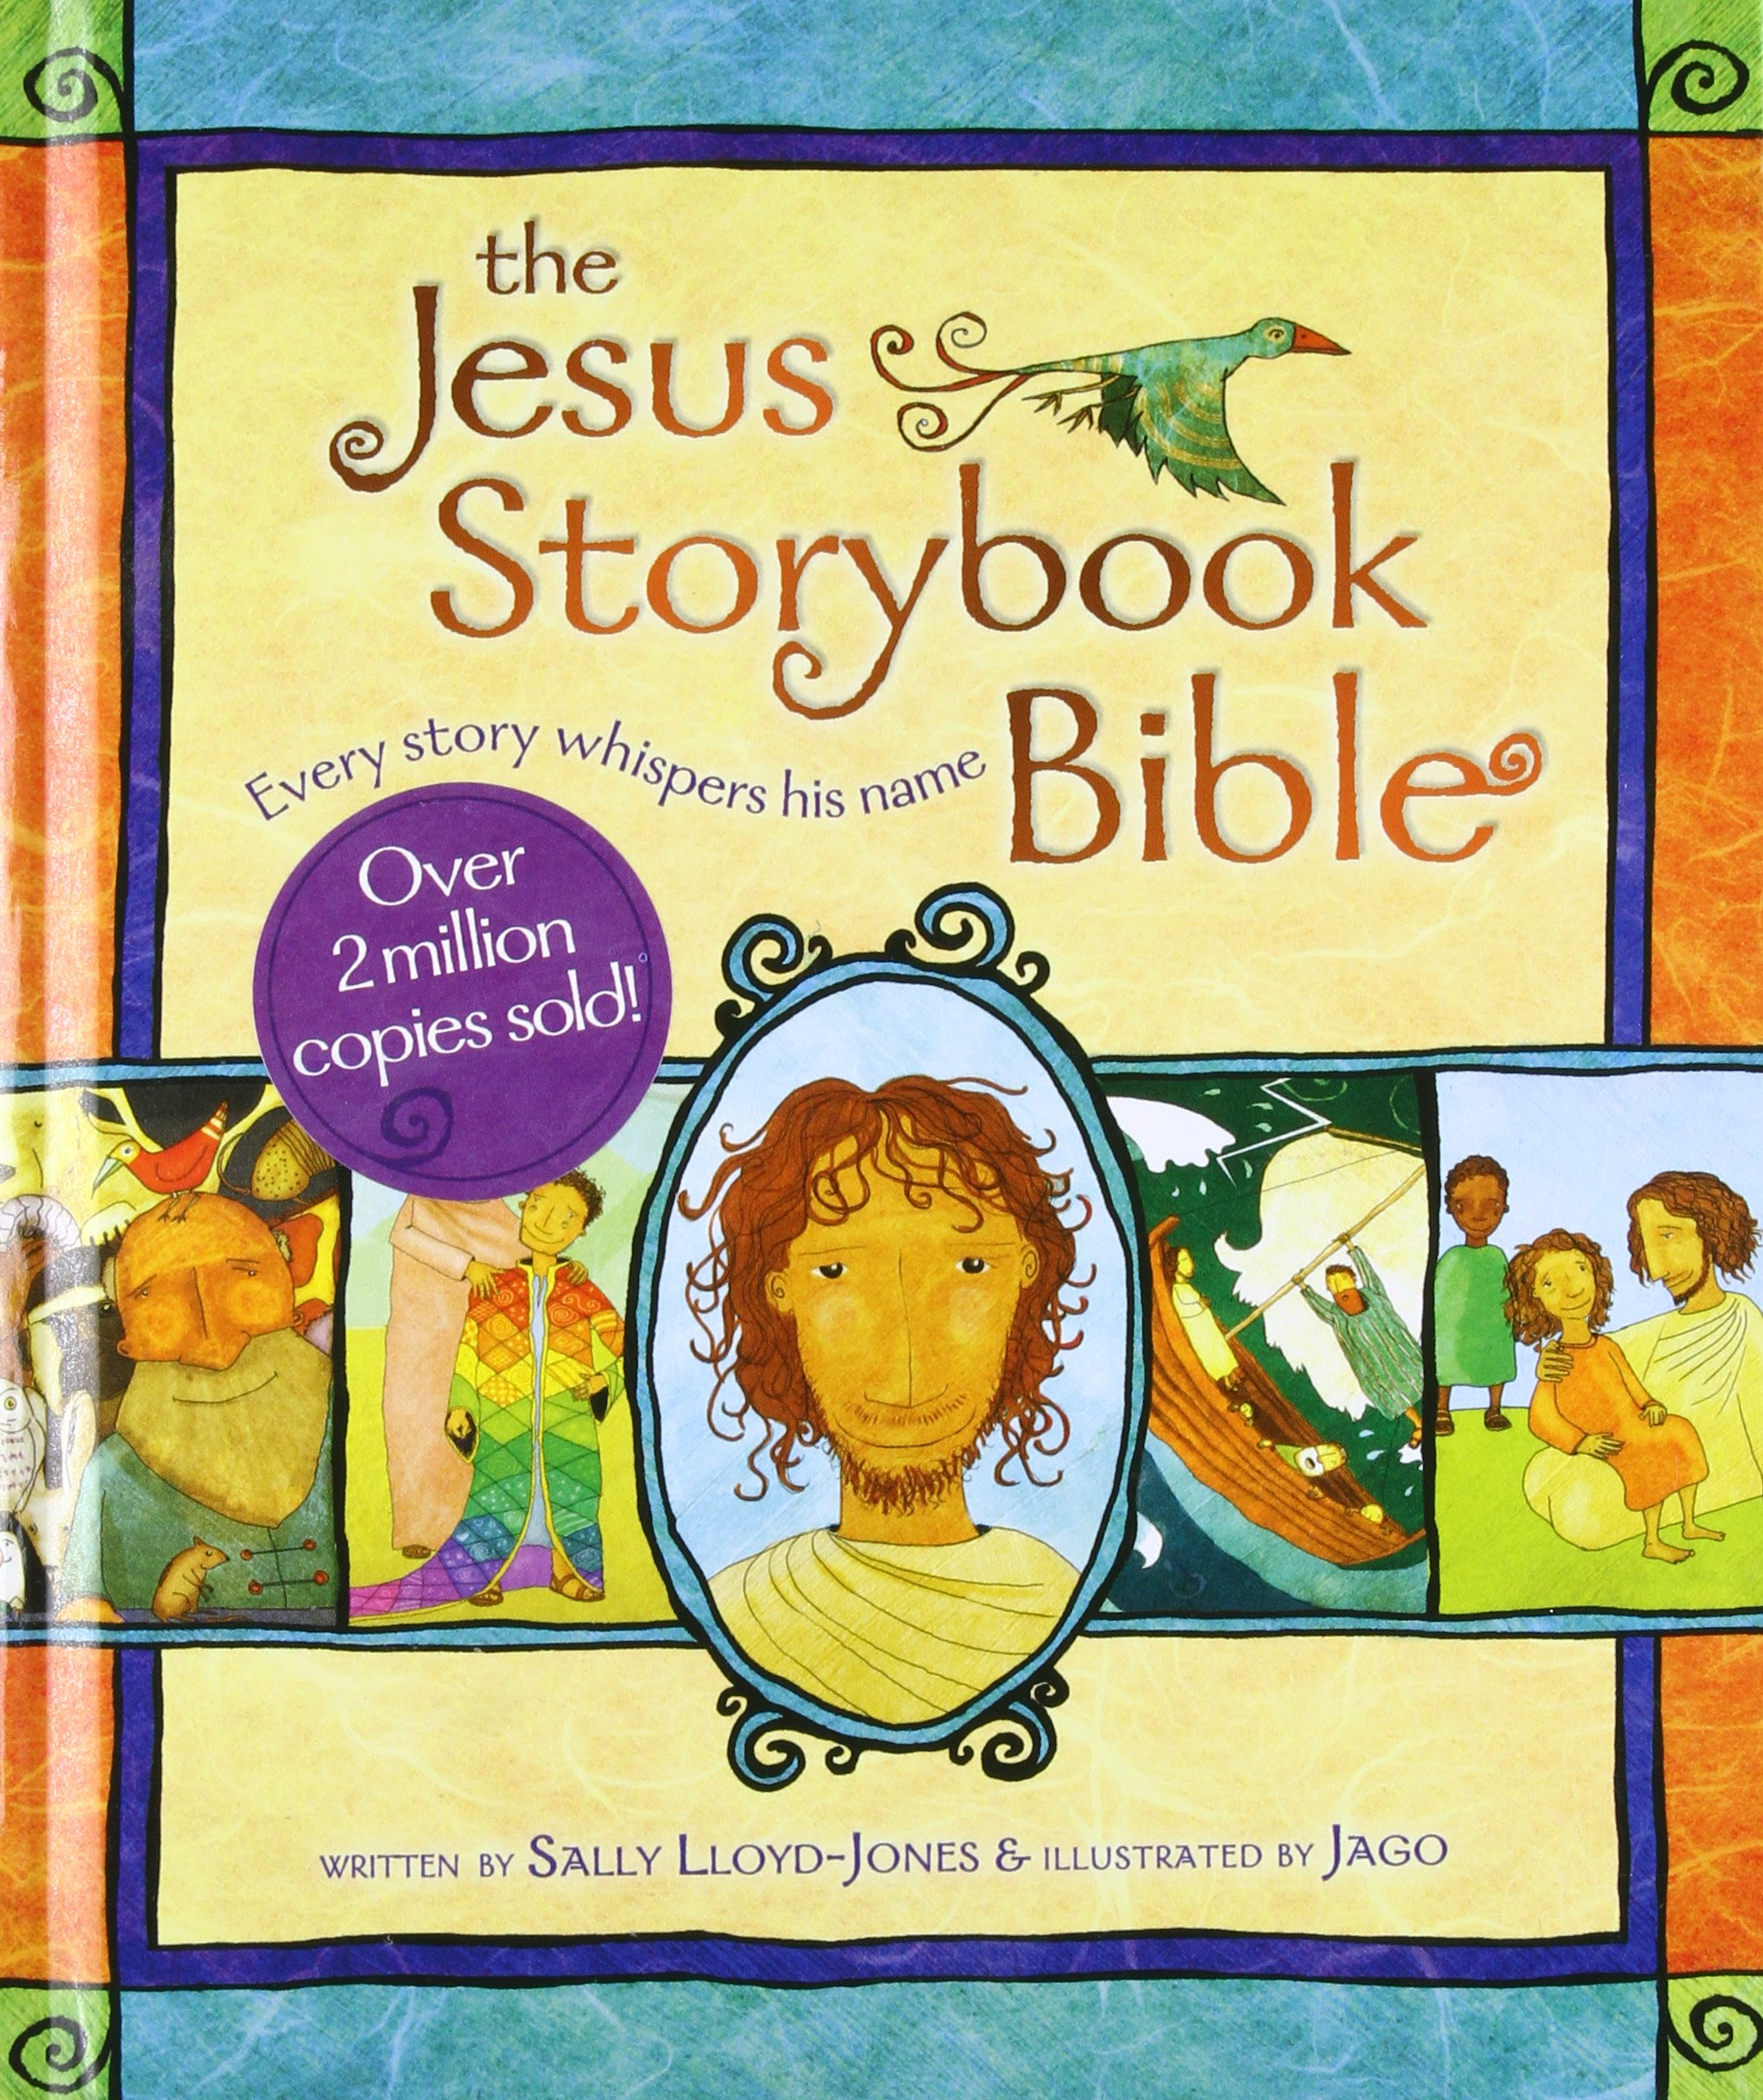 You see, the best thing about this Story is - it's true. There are lots of stories in the Bible, but all the stories are telling one Big Story. The Story of how God loves his children and comes to rescue them.  - -Taken from The Jesus Storybook Bible by Sally Lloyd Jones